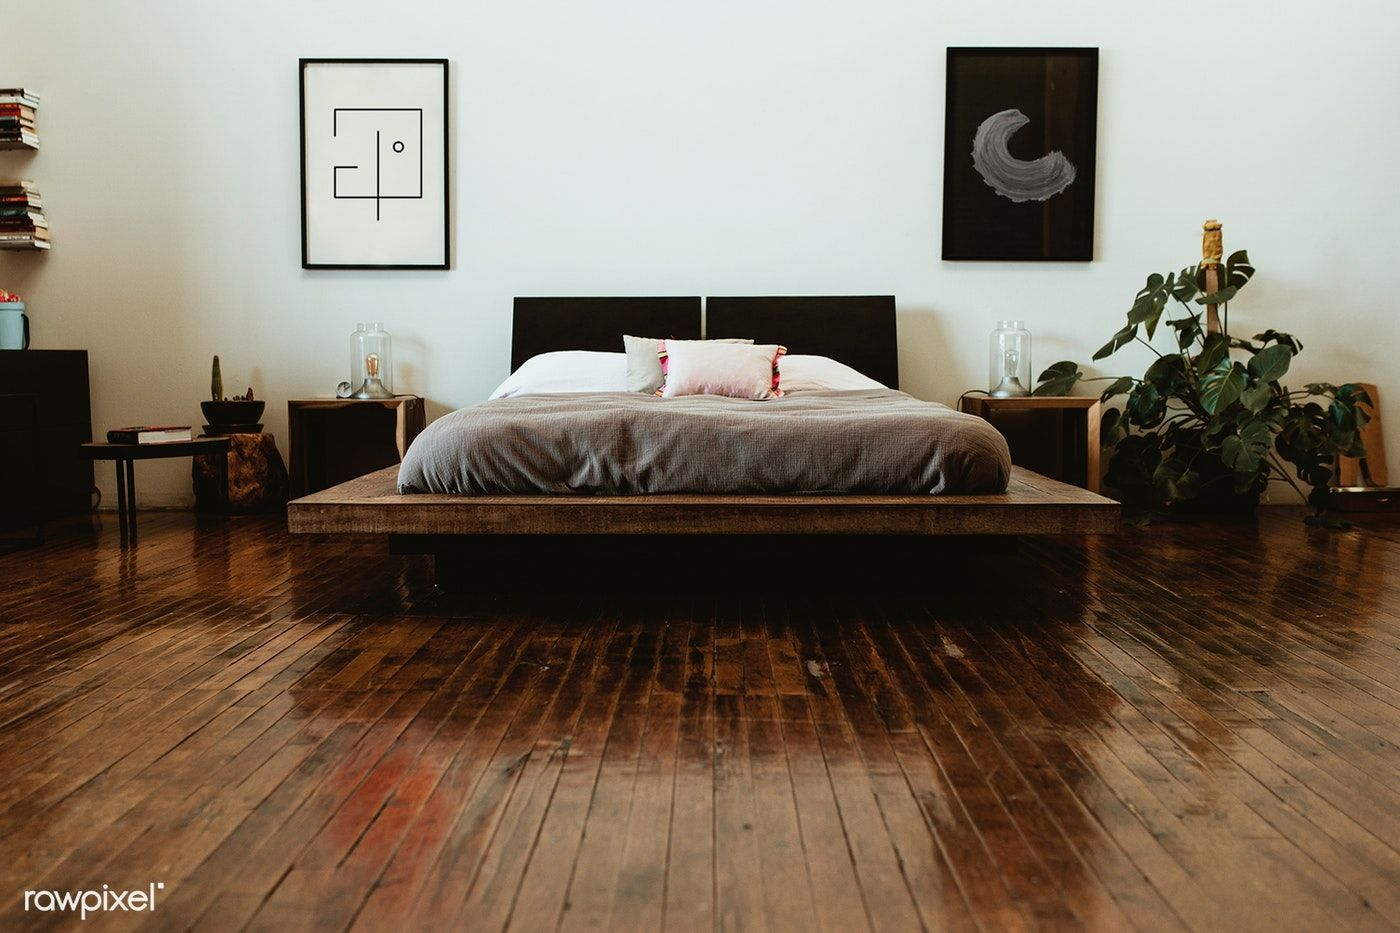 Download Premium Image Of Industrial Bedroom With Dark Wooden Floors In 2020 Dark Bedroom Furniture White And Brown Bedroom Dark Wooden Floor